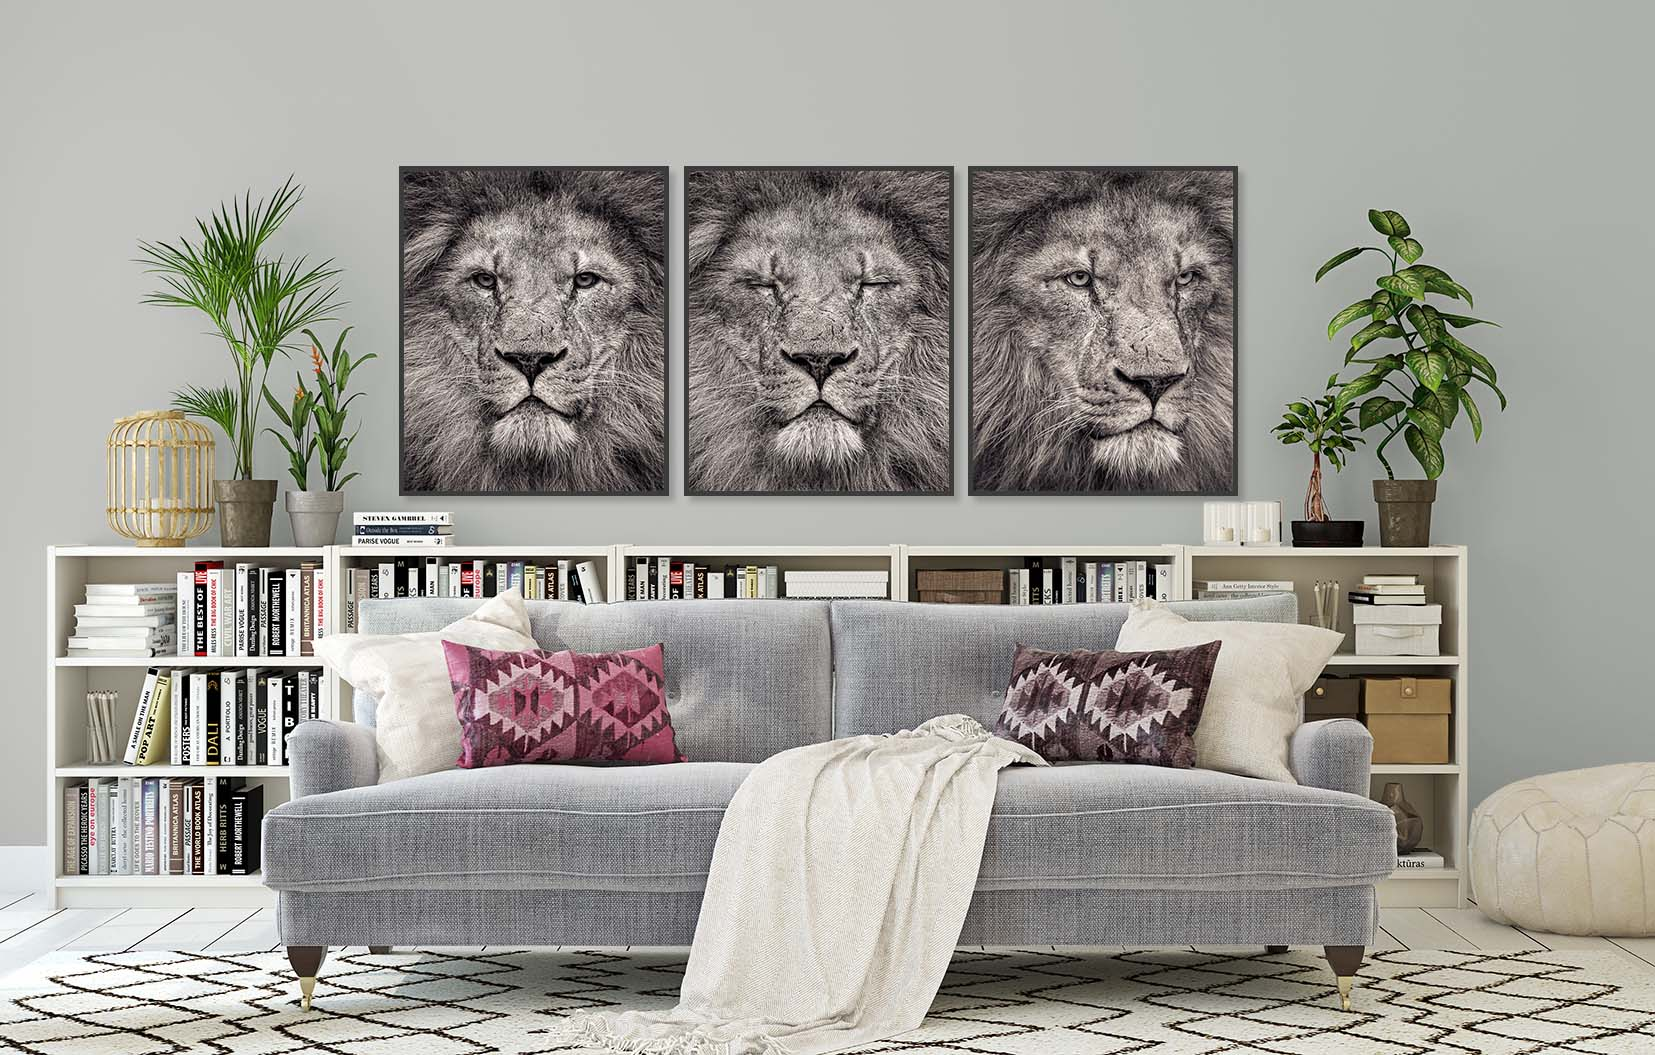 Black and white print of a lion from the Fading From View portrait series. Big cat and animal prints by fine art photographer Paul Coghlin. Limited edition photographic prints.